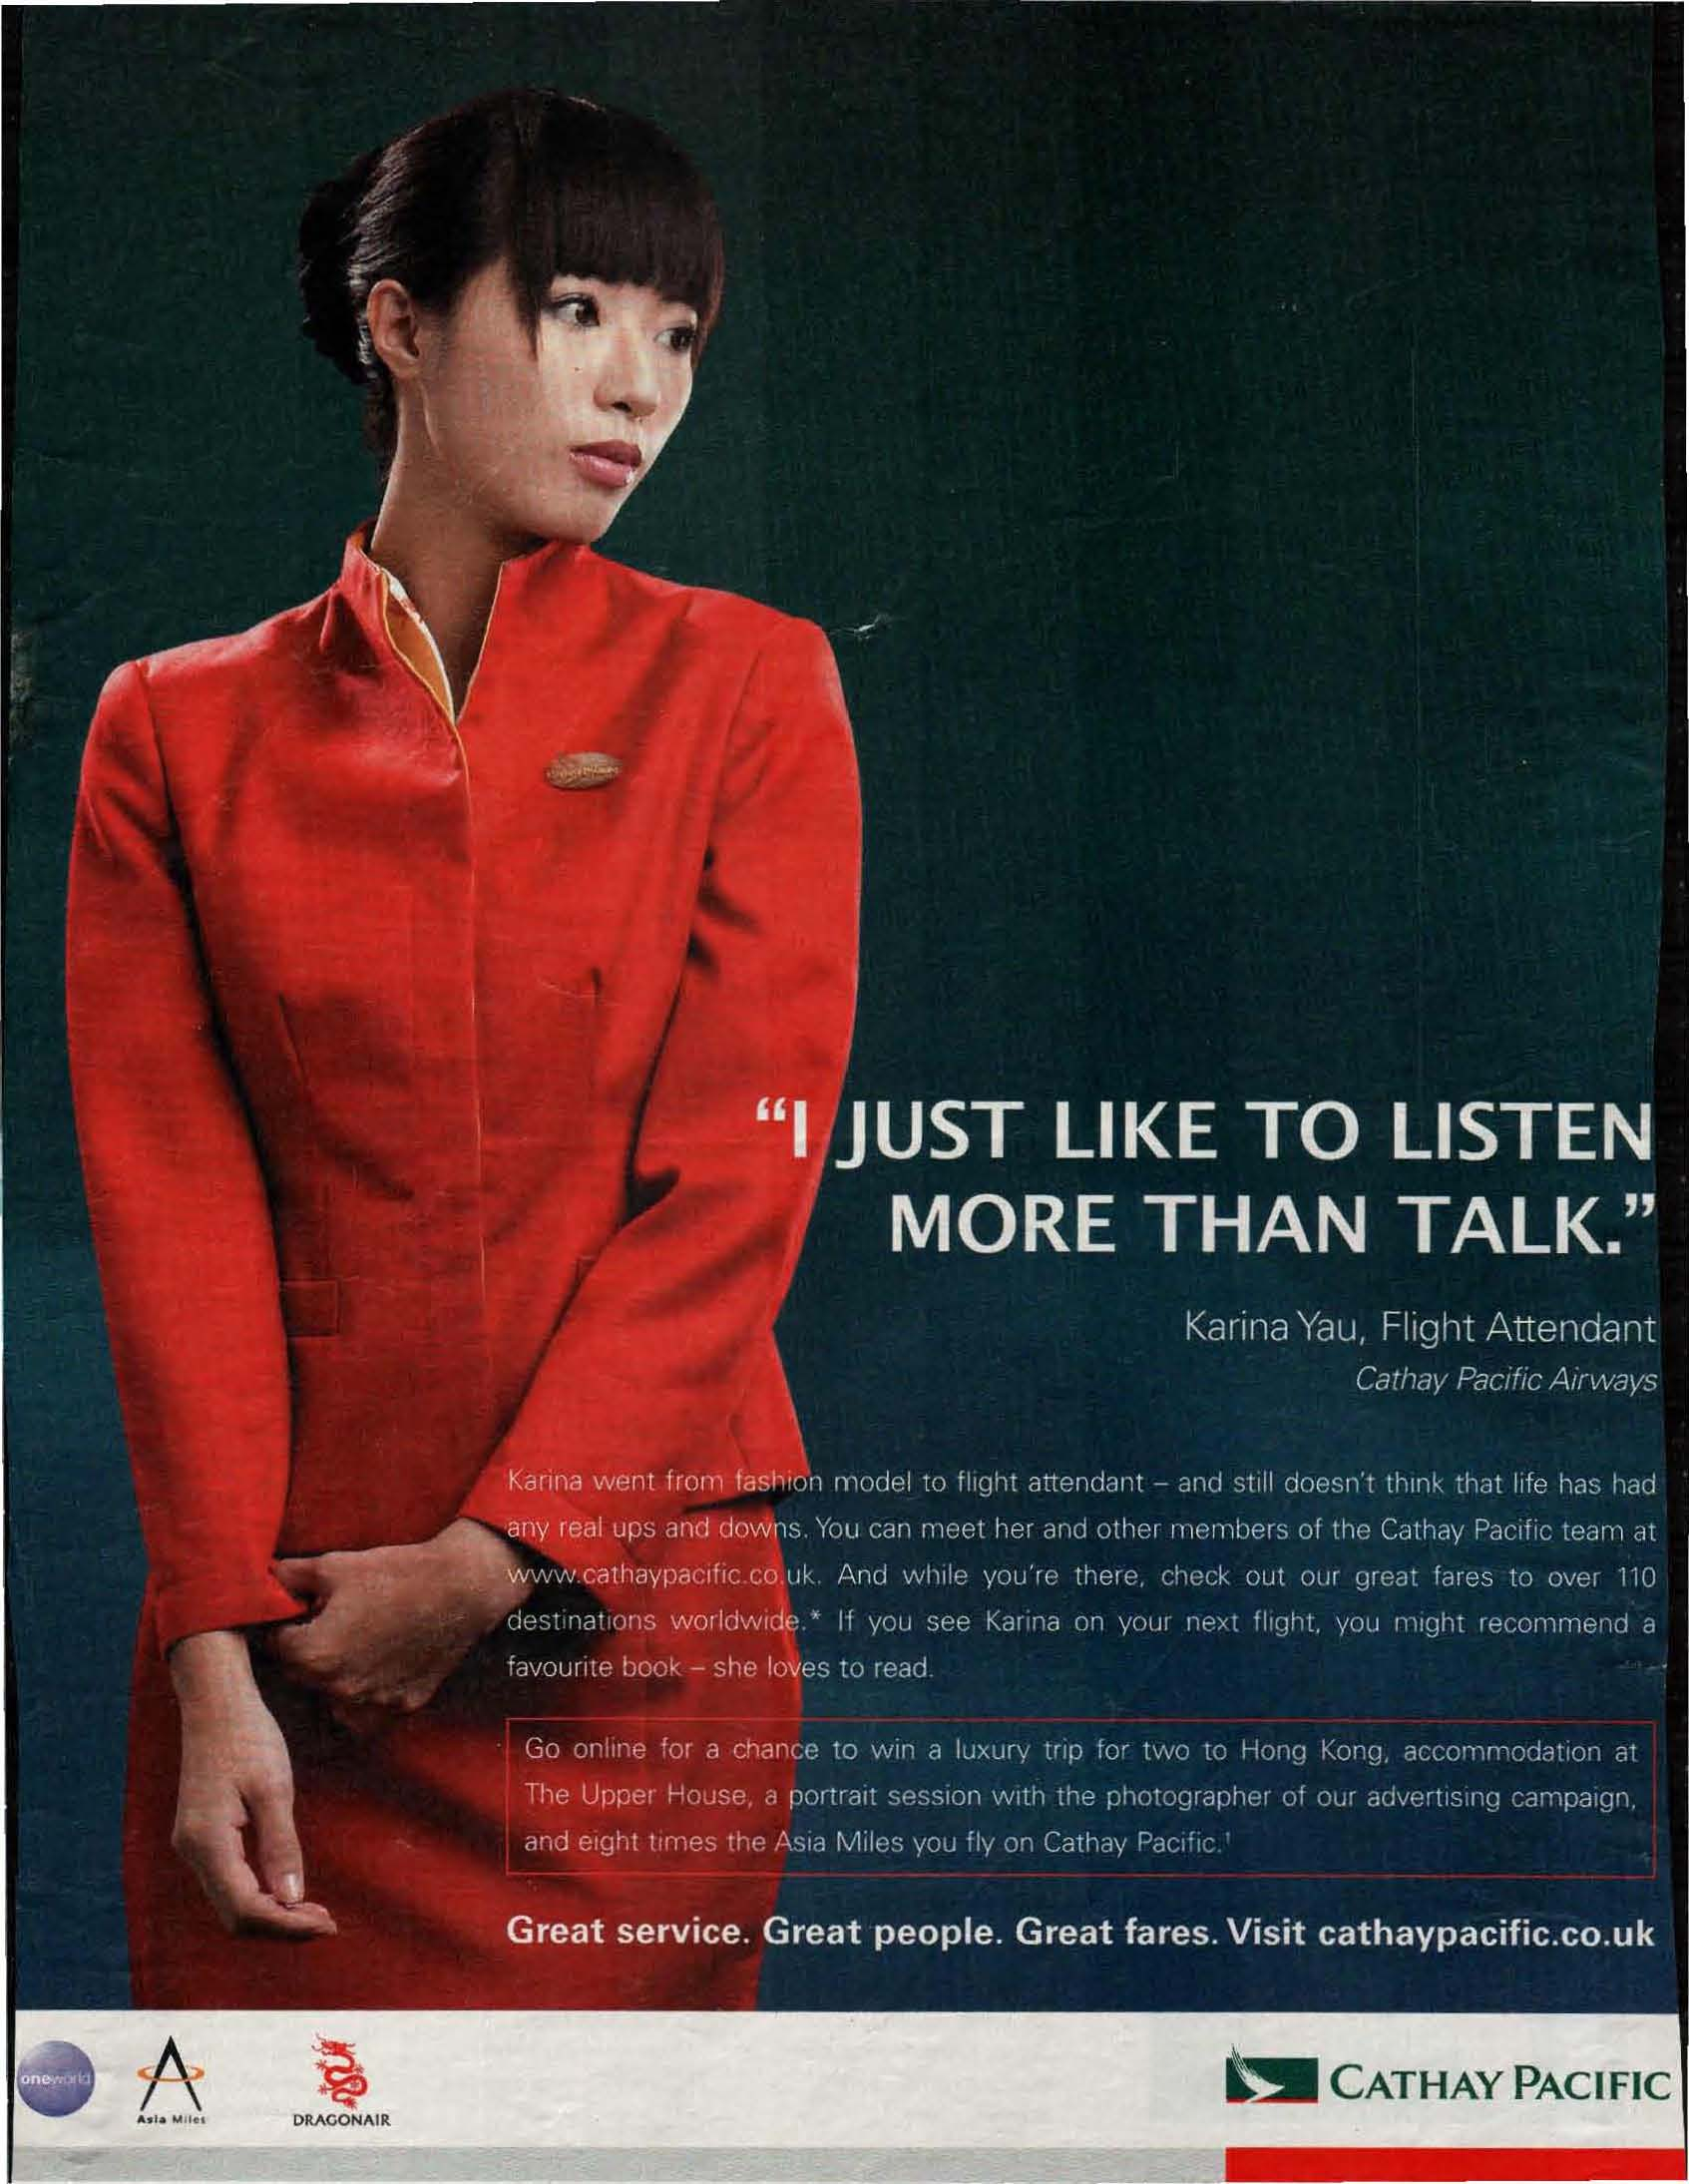 Advertising asian stereotype